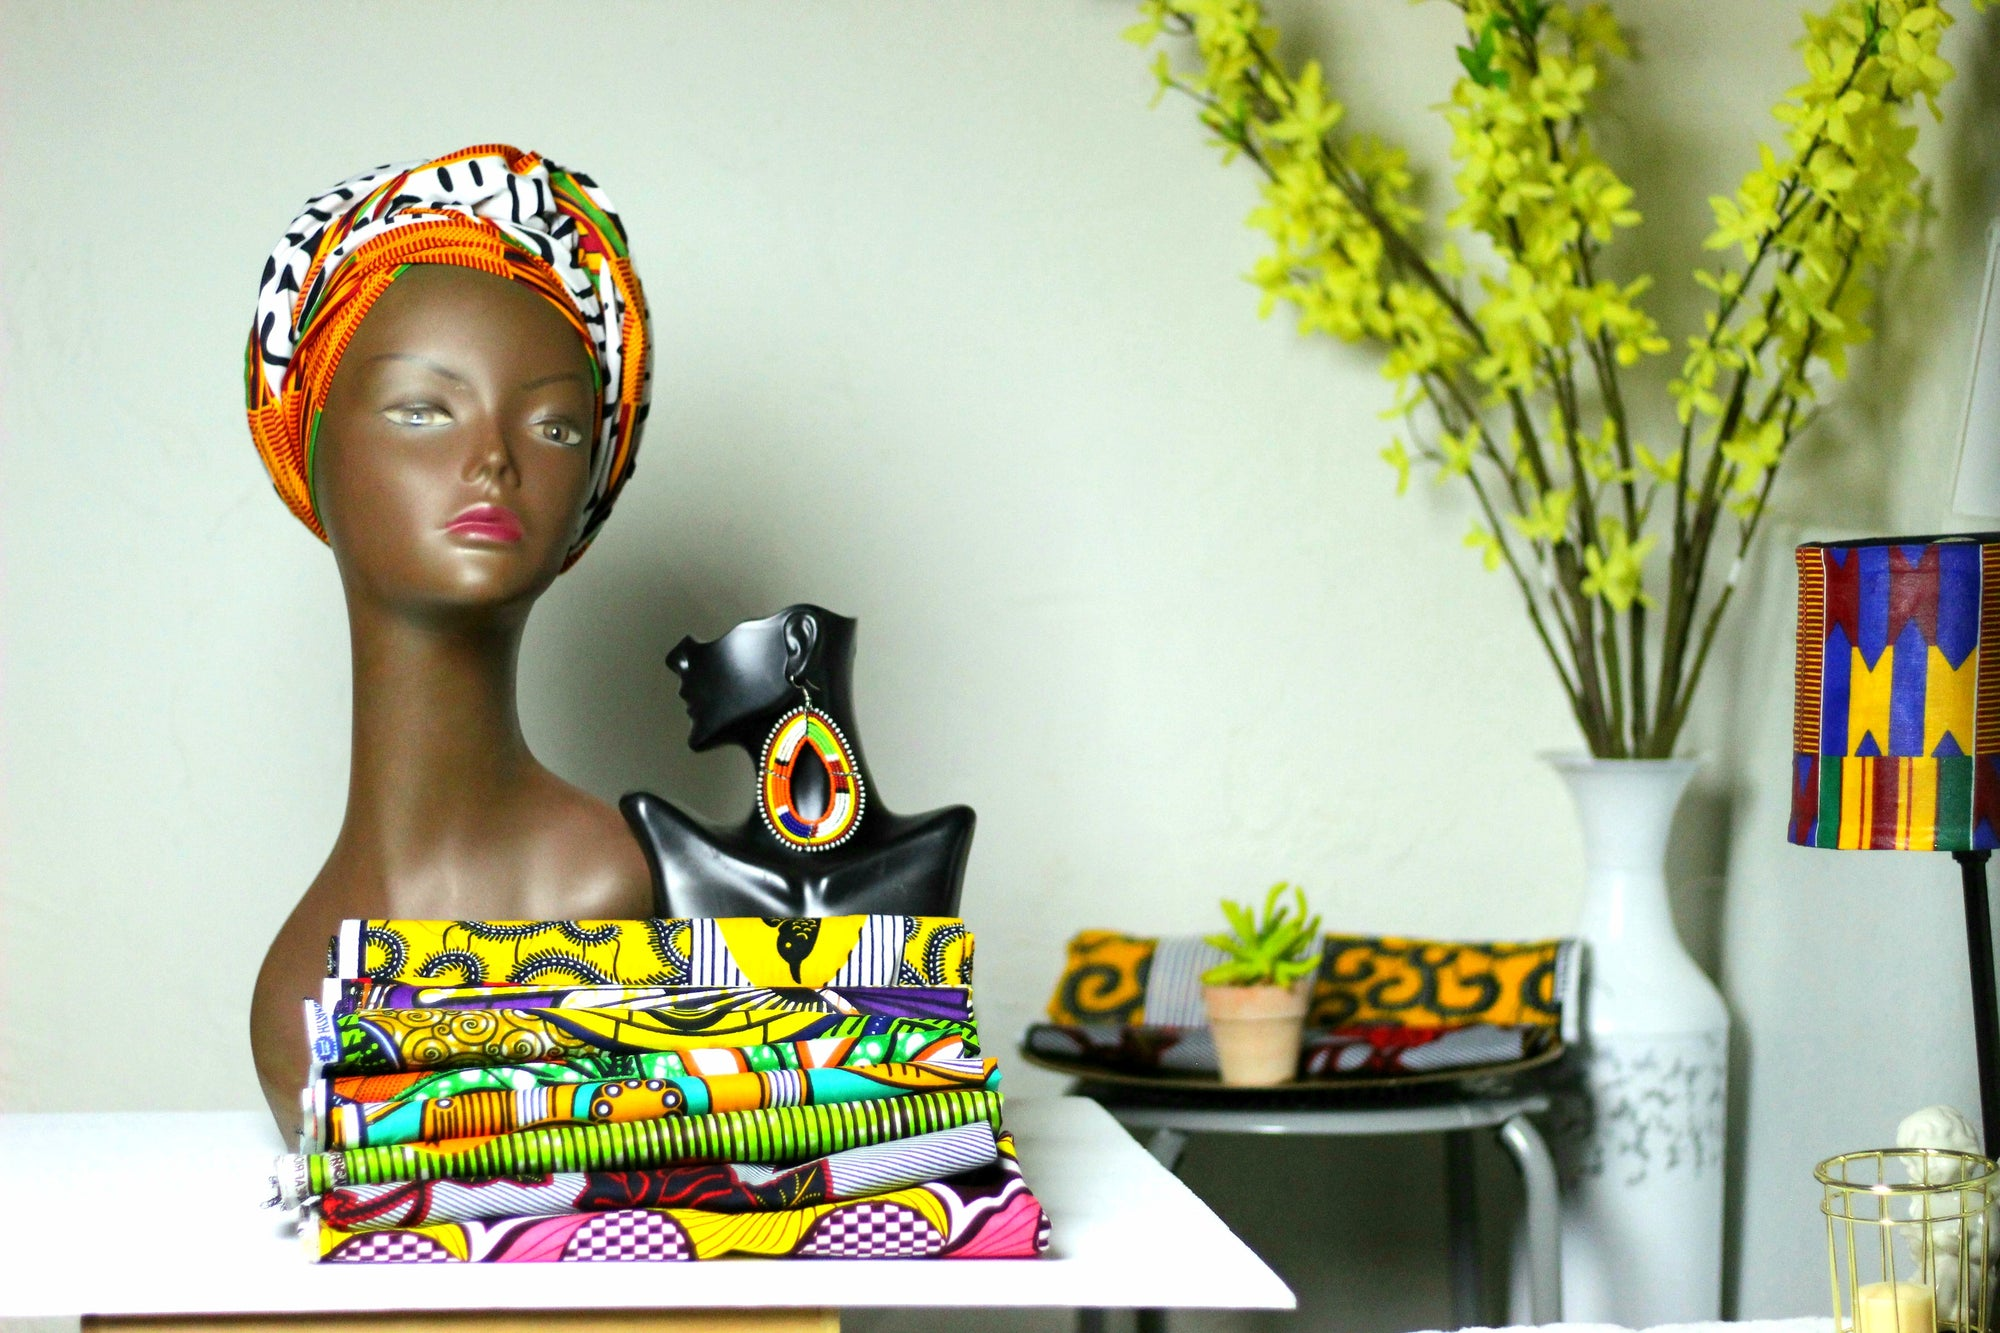 African Print Headwrap (Jumbo) - Orange/Black/White  Kente Print